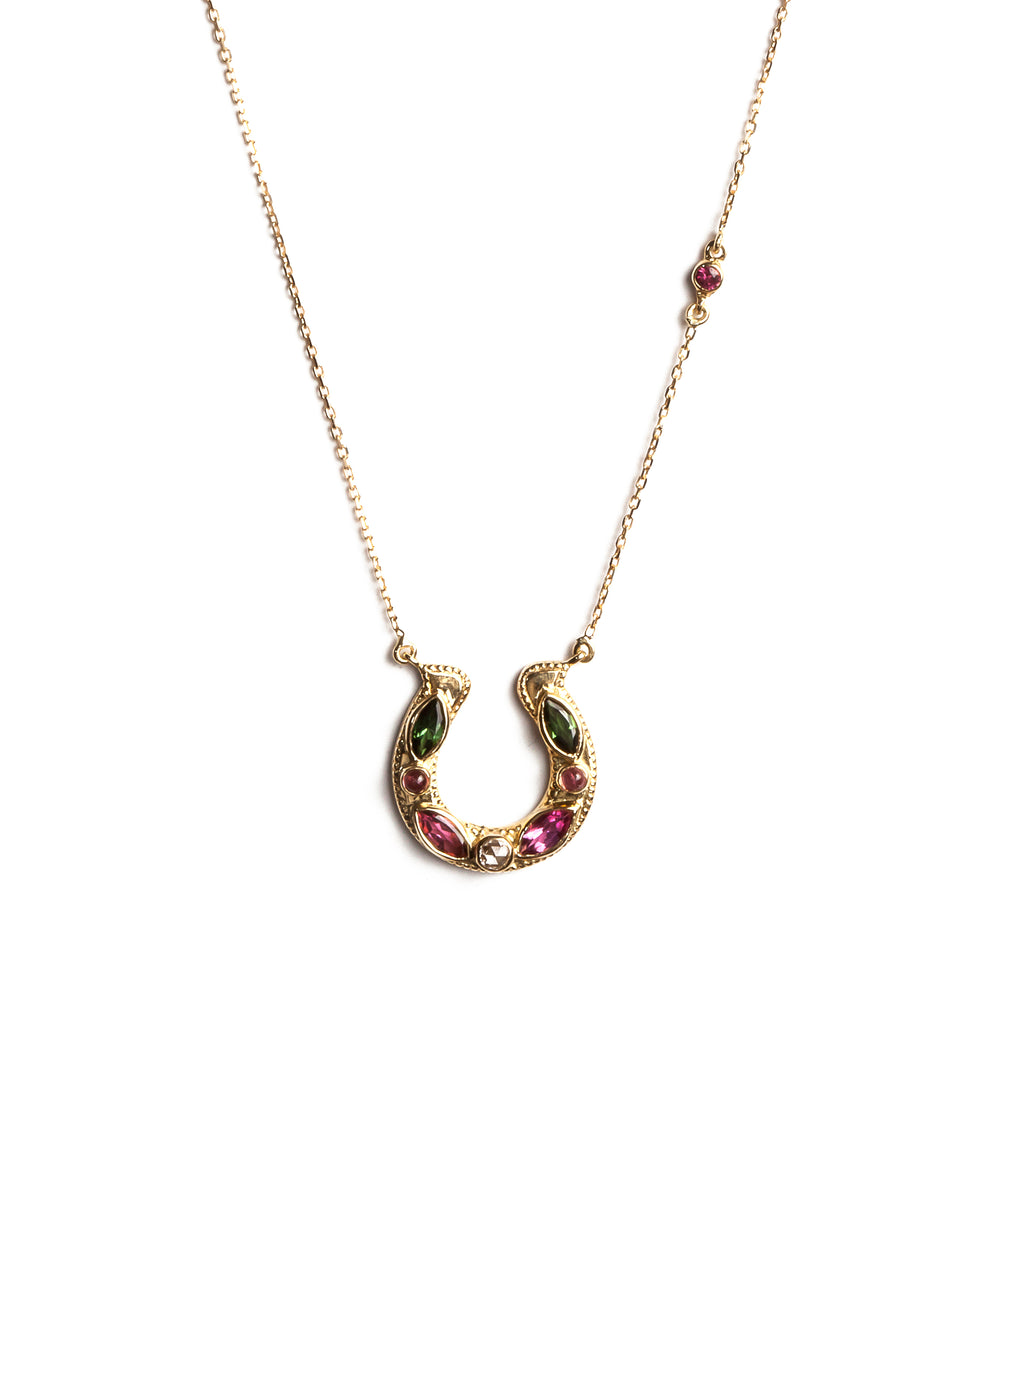 Horseshoe Necklace with Multicolored Marquise Tourmalines and Diamonds